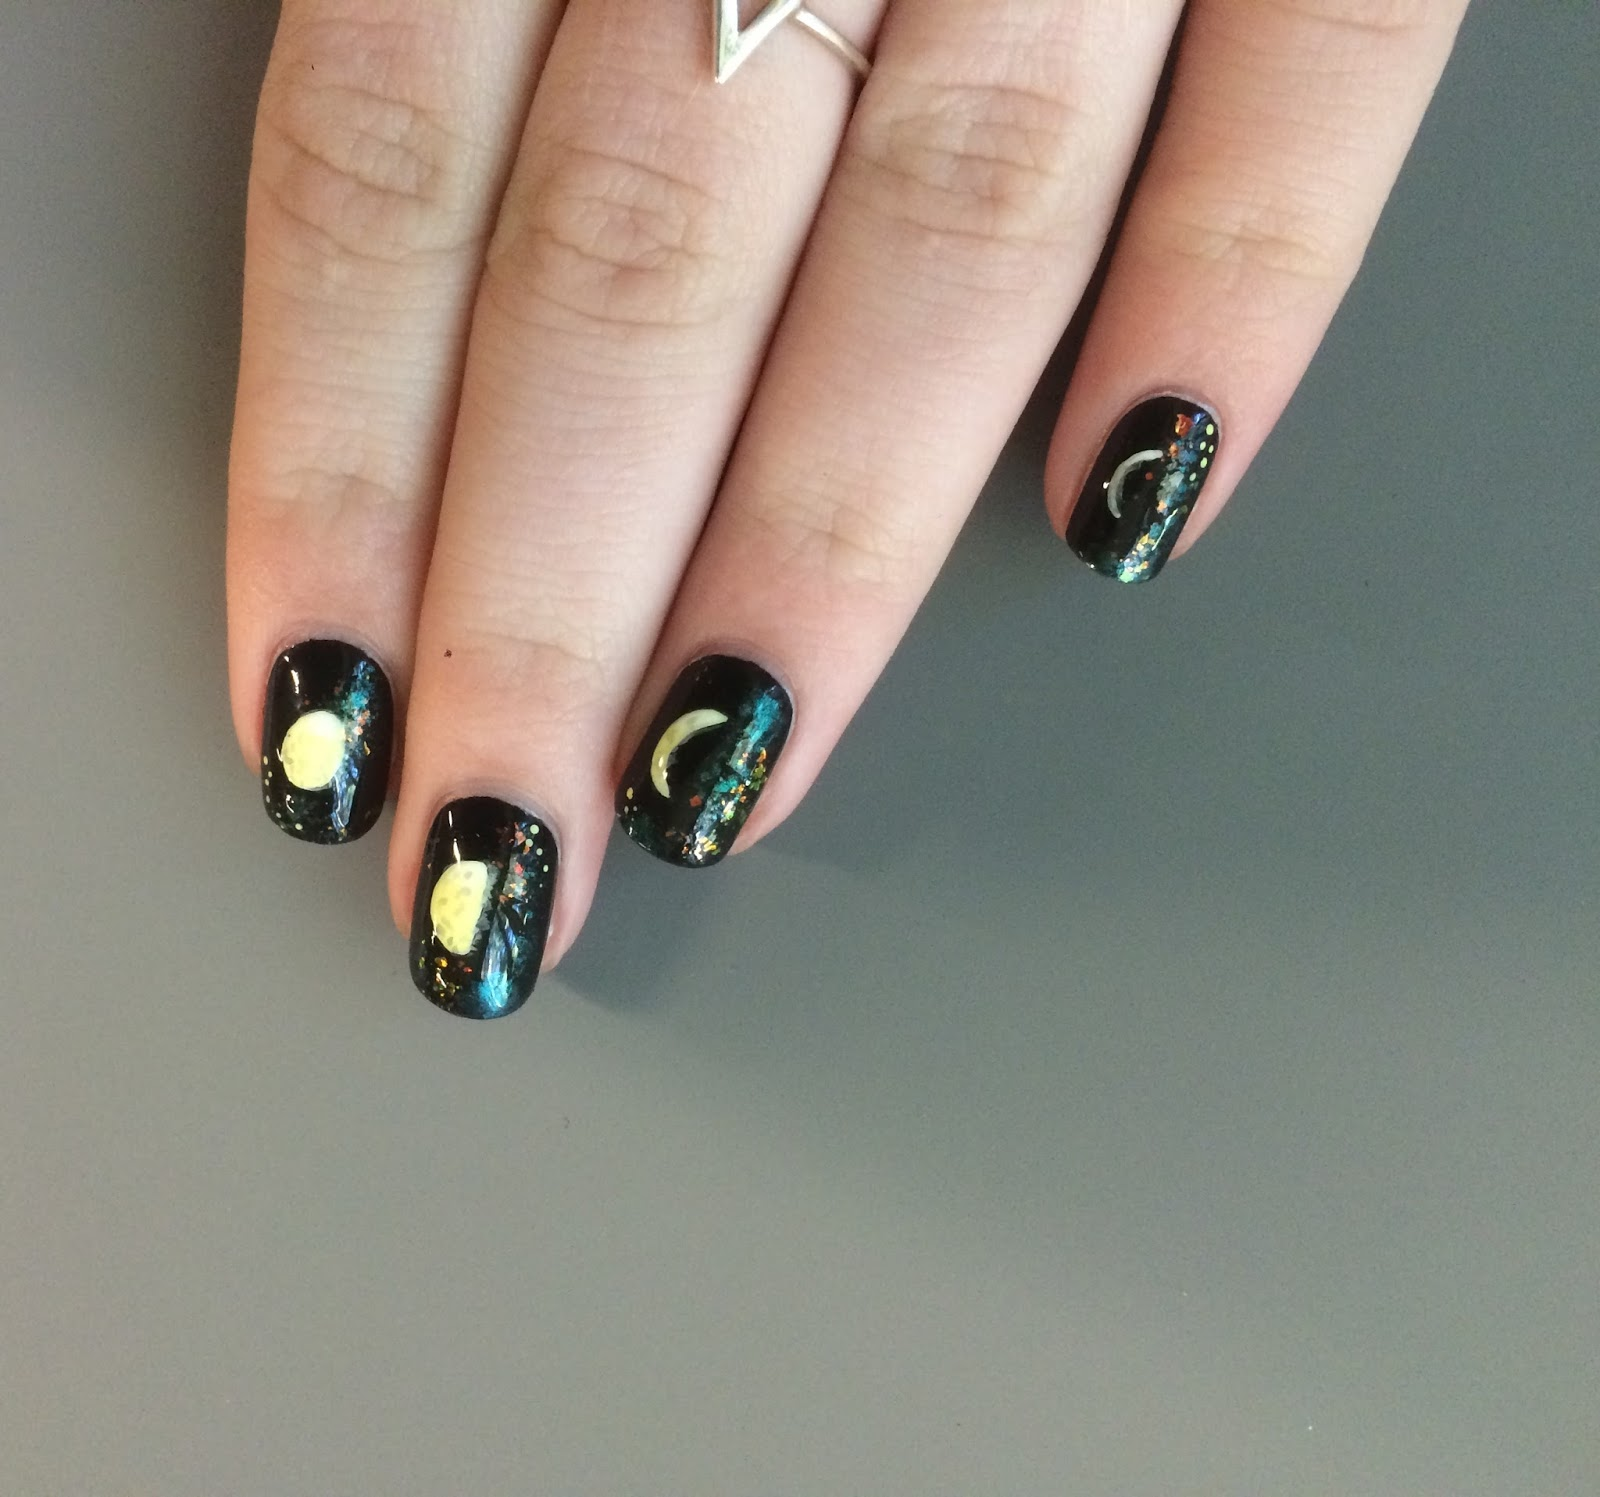 See 12 Phases Of The Moon Cycle I Added Some Sparkle In Background To Mimic Various Stars Galaxy Still Getting Use Having Short Nails